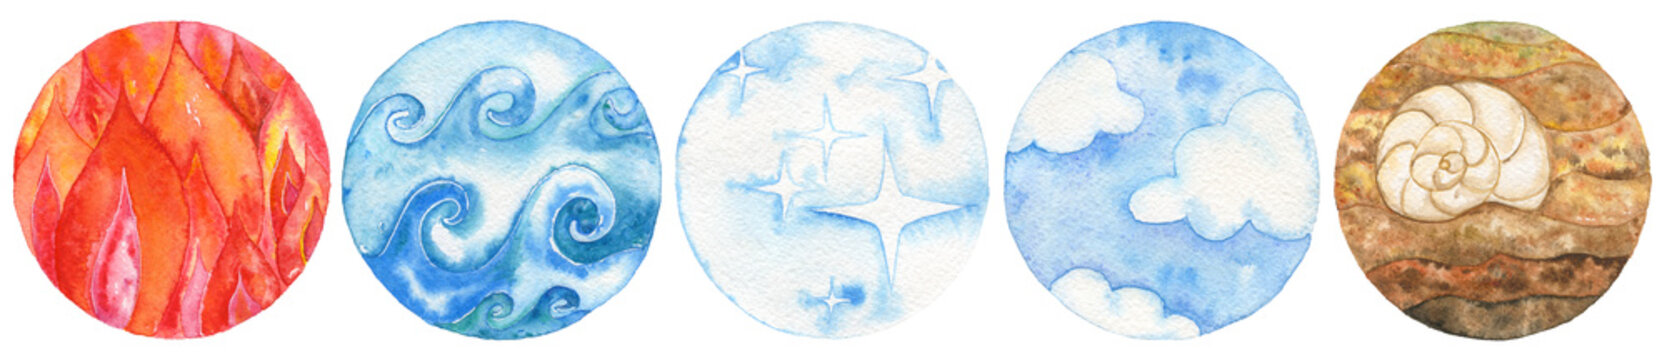 Five natural elements: fire, water, ether, air and earth. Watercolor illustration set.